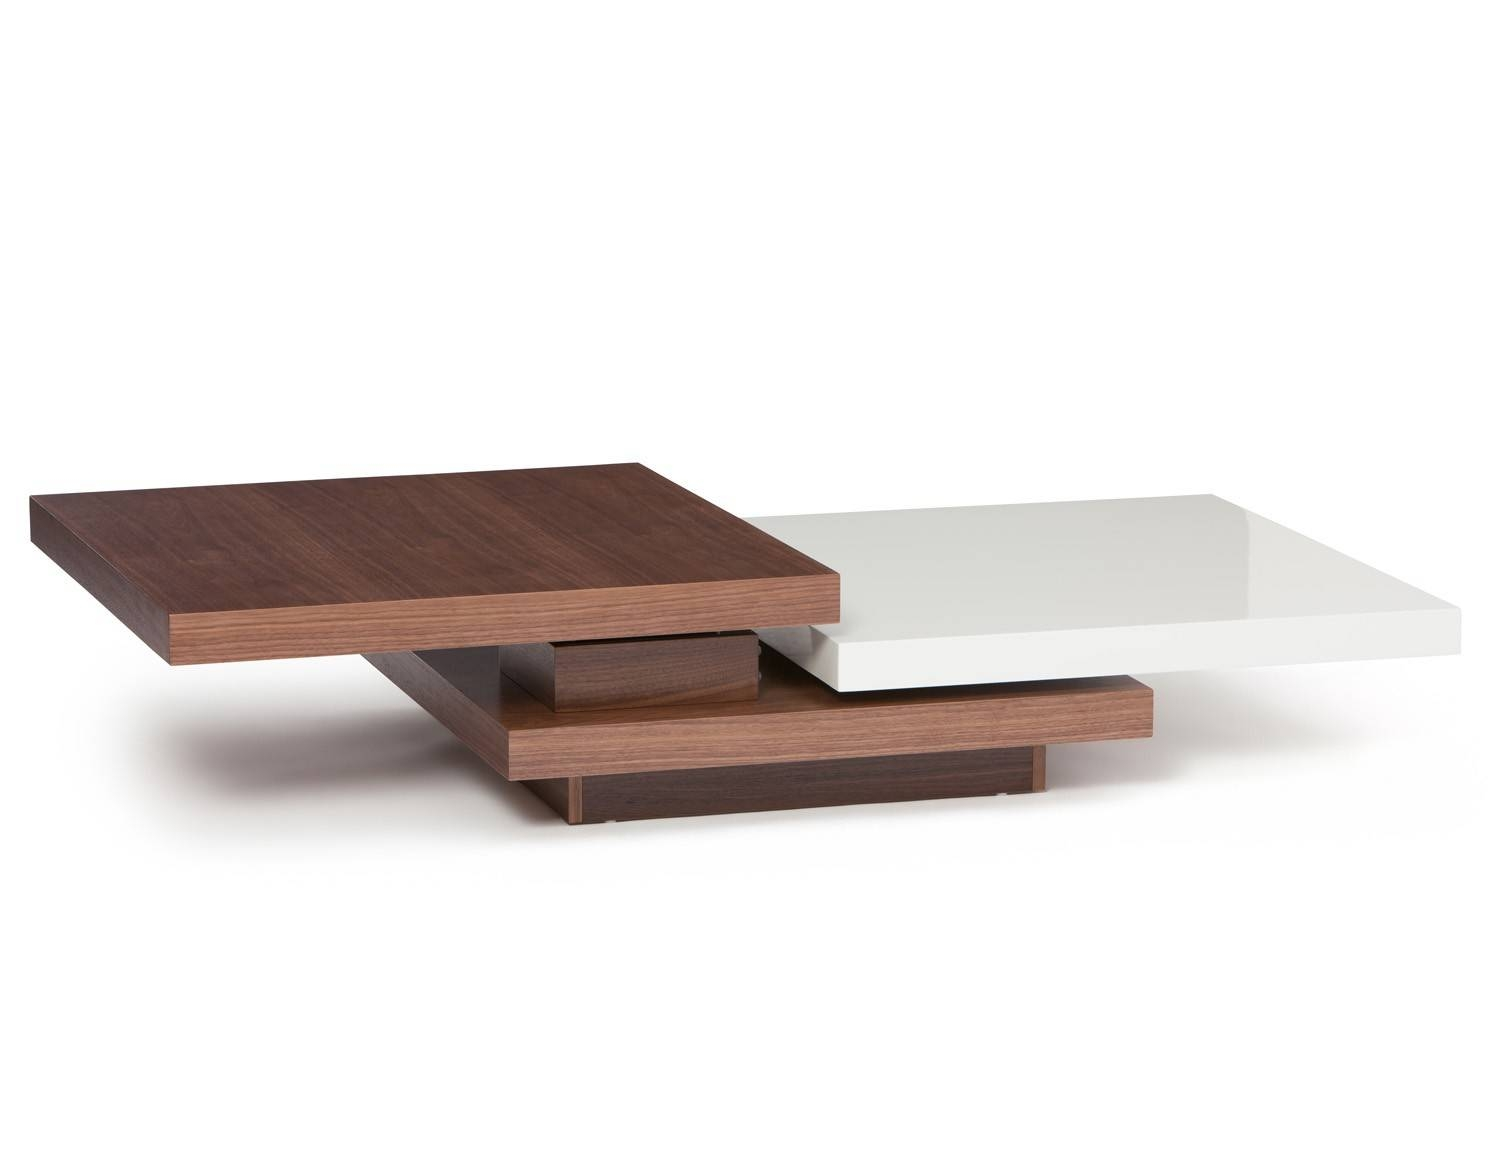 Structube Coffee Table Beyond Belief On Ideas With Picasso Swivel with regard to Swivel Coffee Tables (Image 26 of 30)